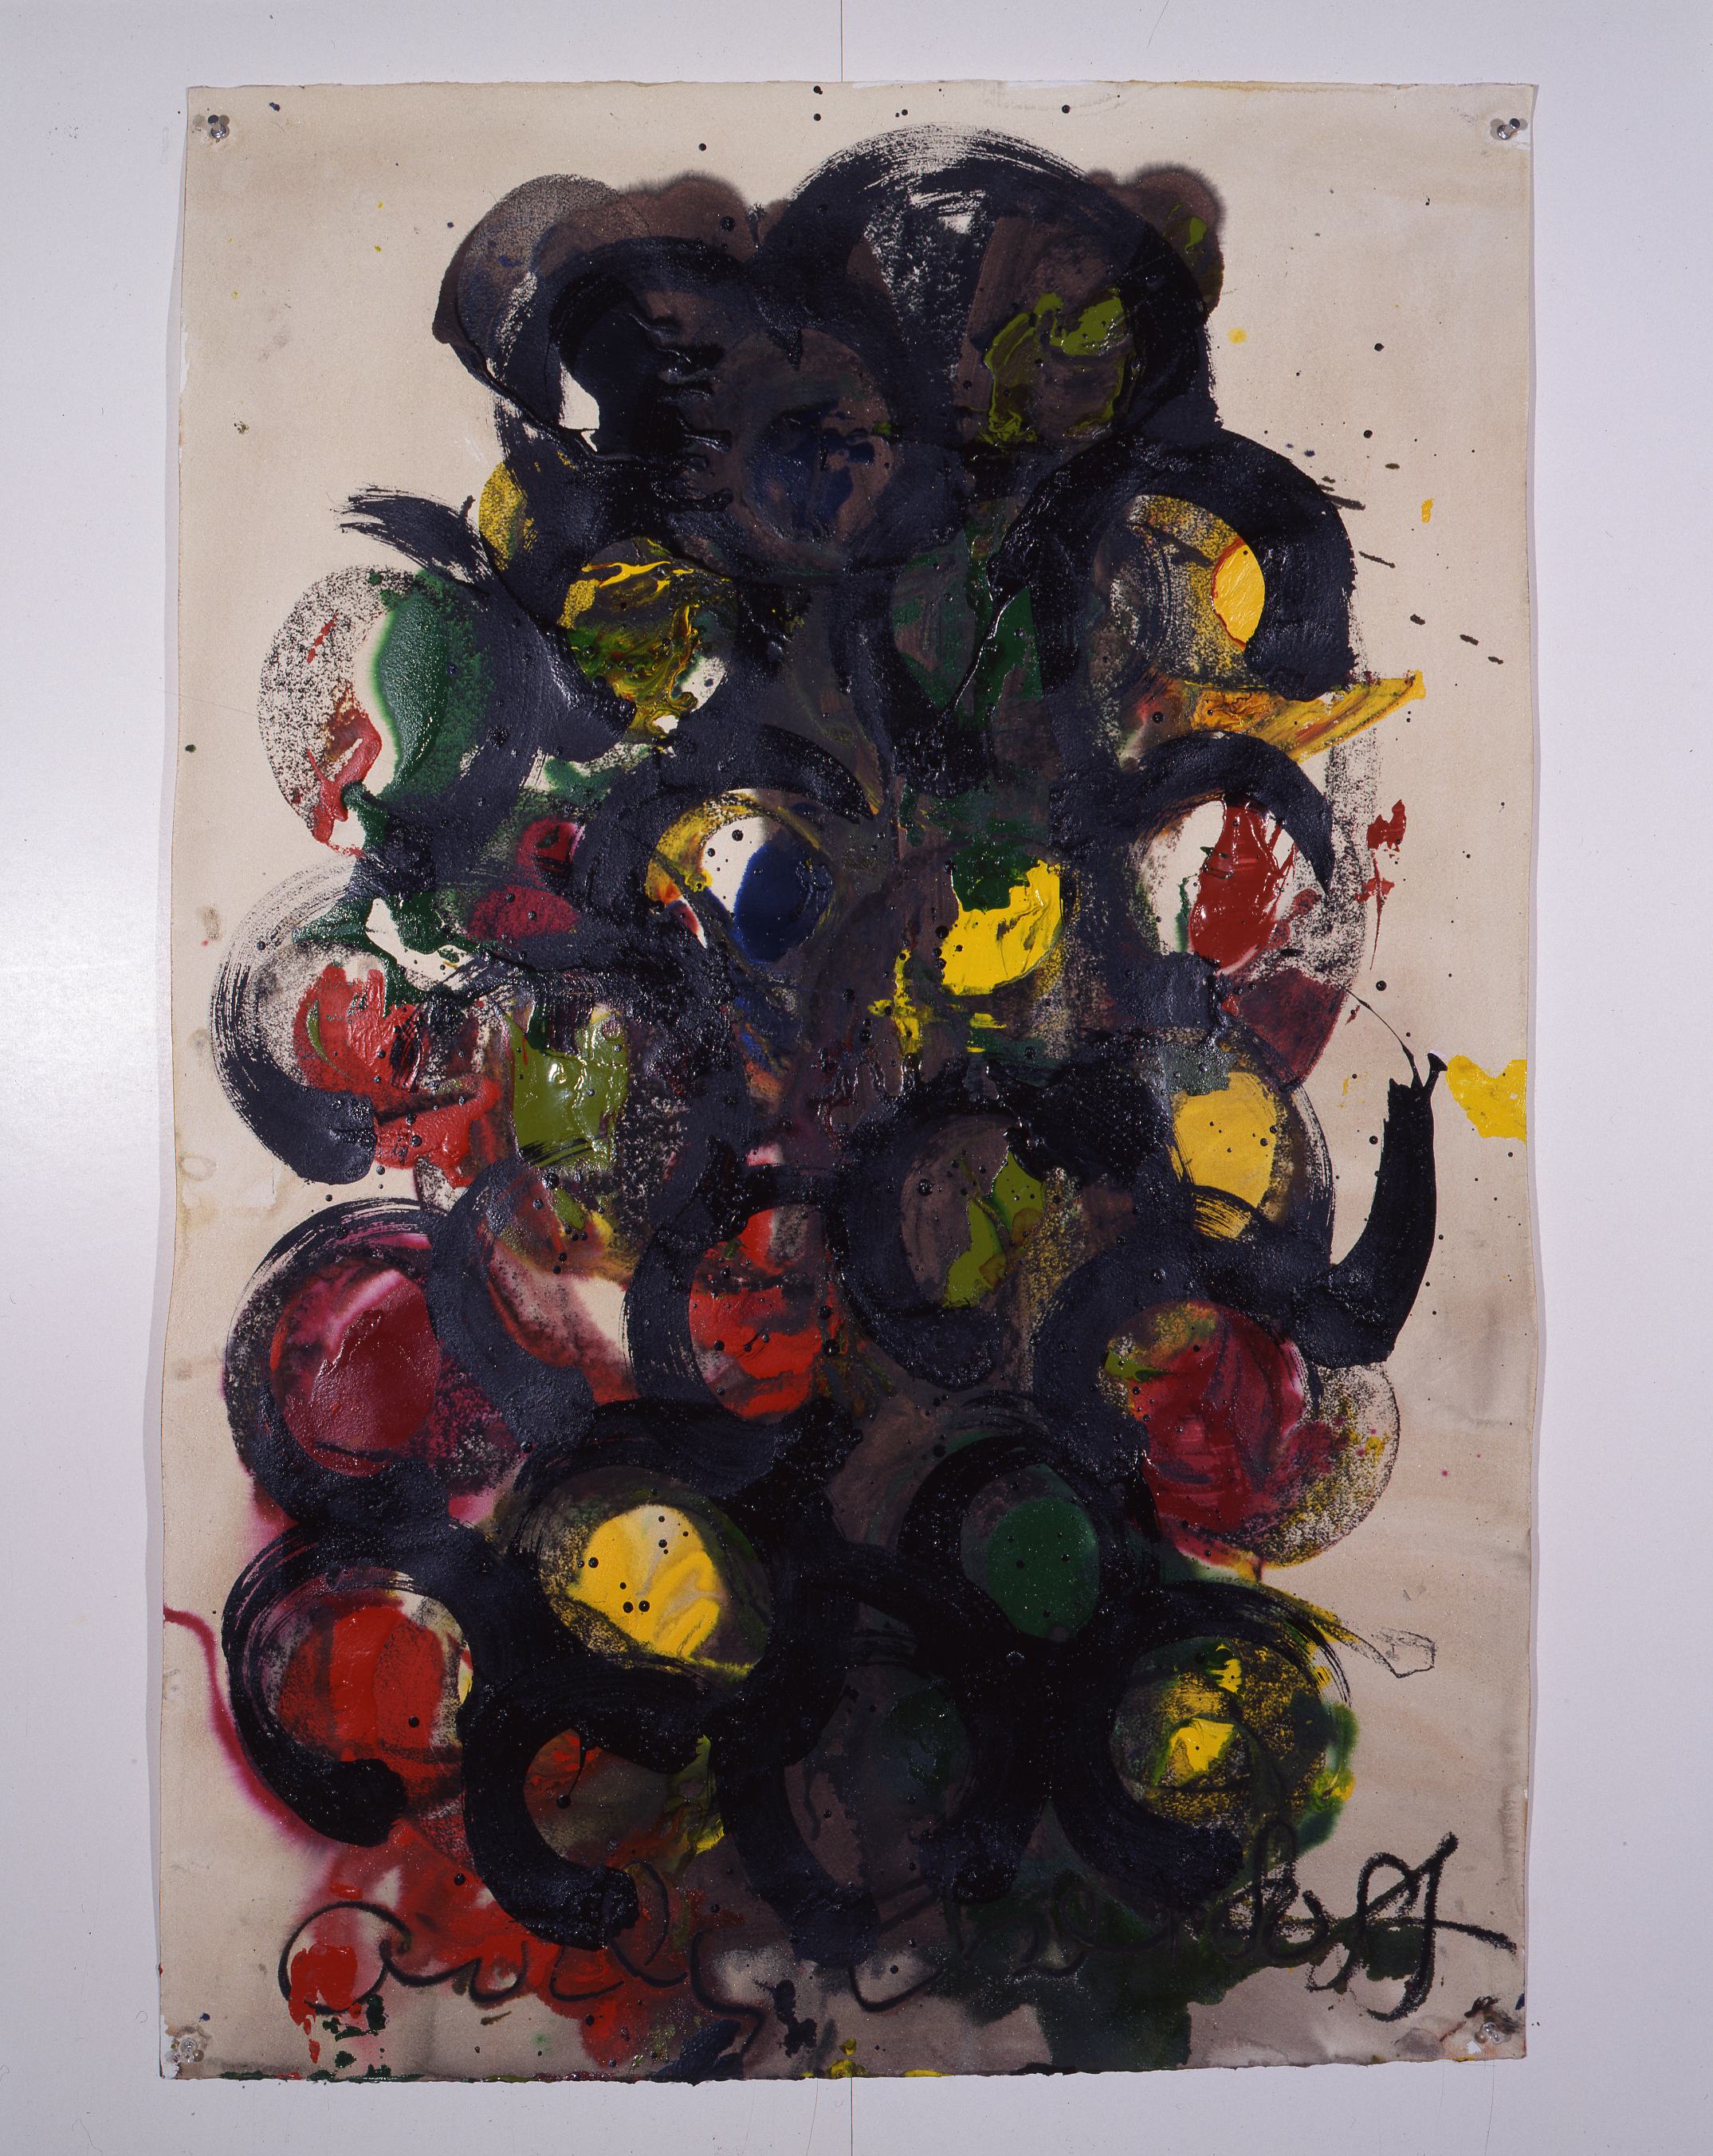 Dale Chihuly,  Ebeltoft Drawing,  (1991, mixed media on paper, 45 x 30 inches), DC.354